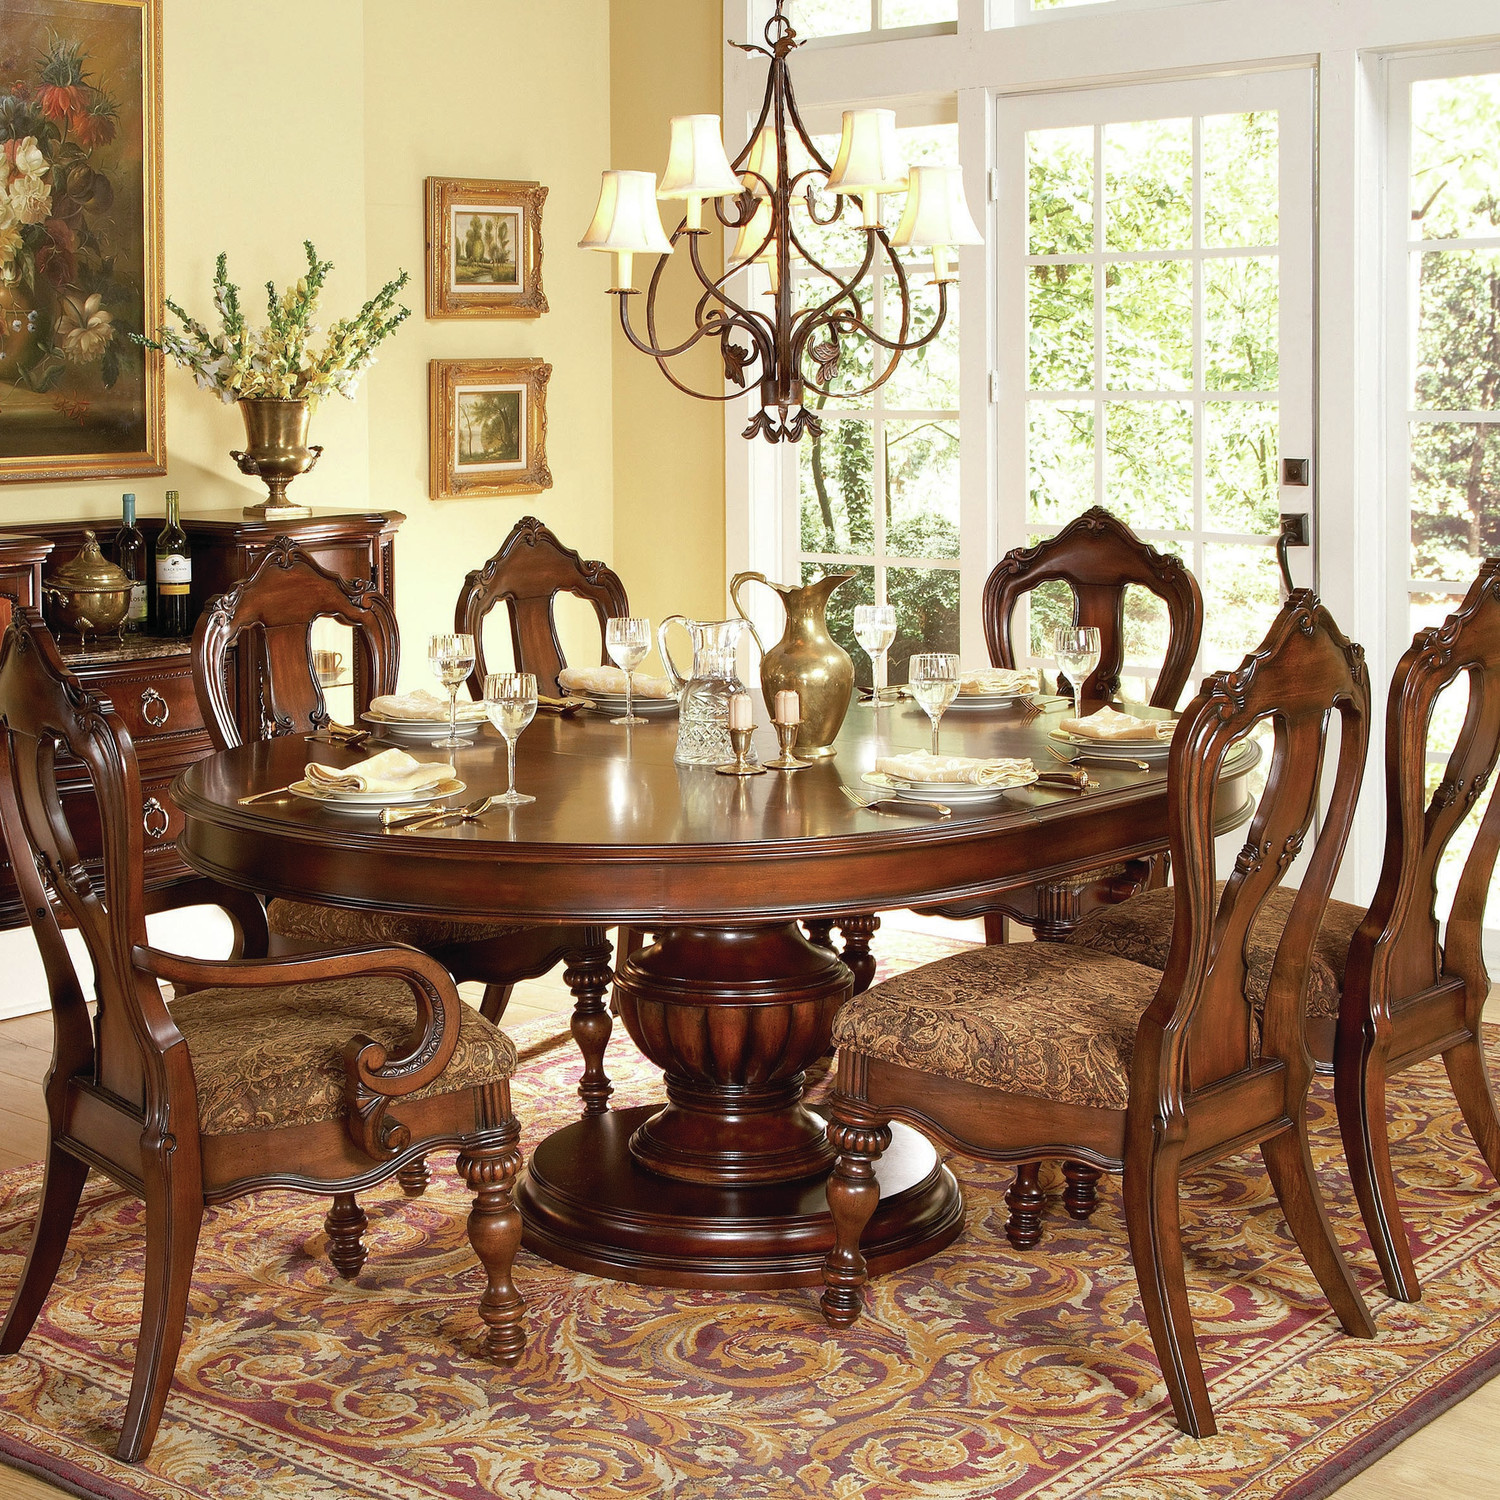 Circular Dining Room: Getting A Round Dining Room Table For 6 By Your Own